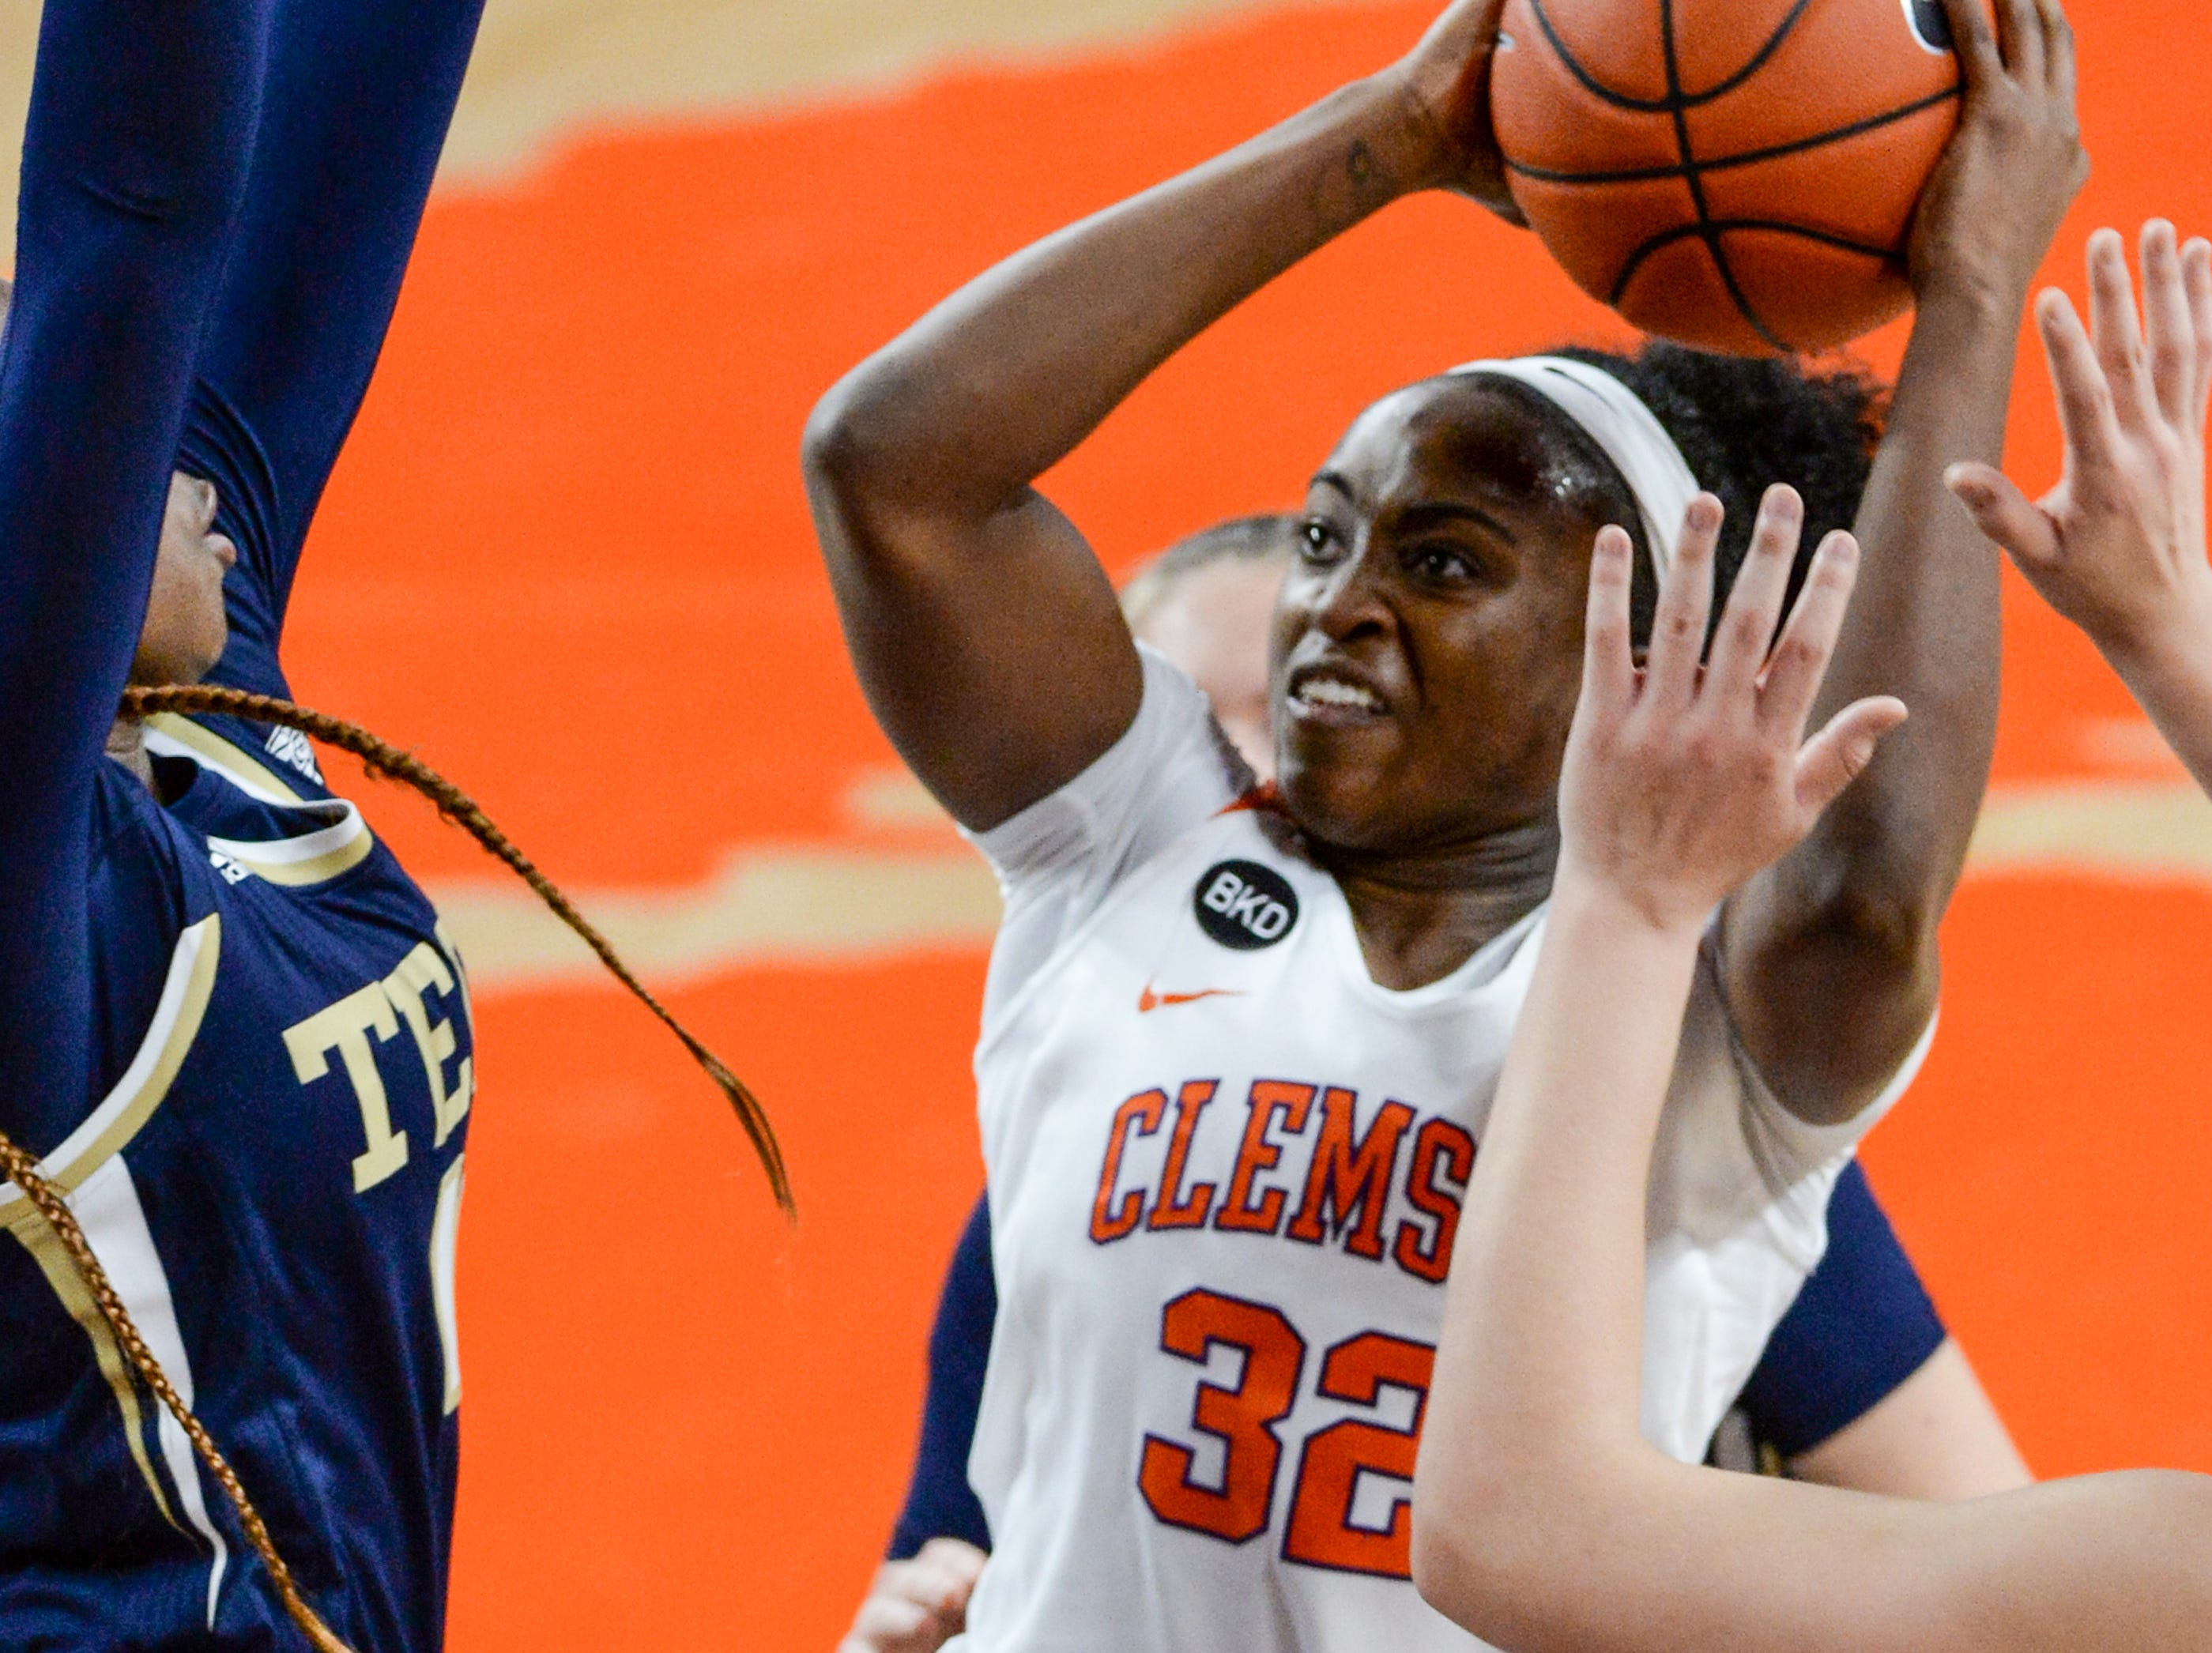 Clemson guard Chyna Cotton(32) shoots against Georgia Tech during the first quarter at Littlejohn Coliseum in Clemson Thursday, January 17, 2019.